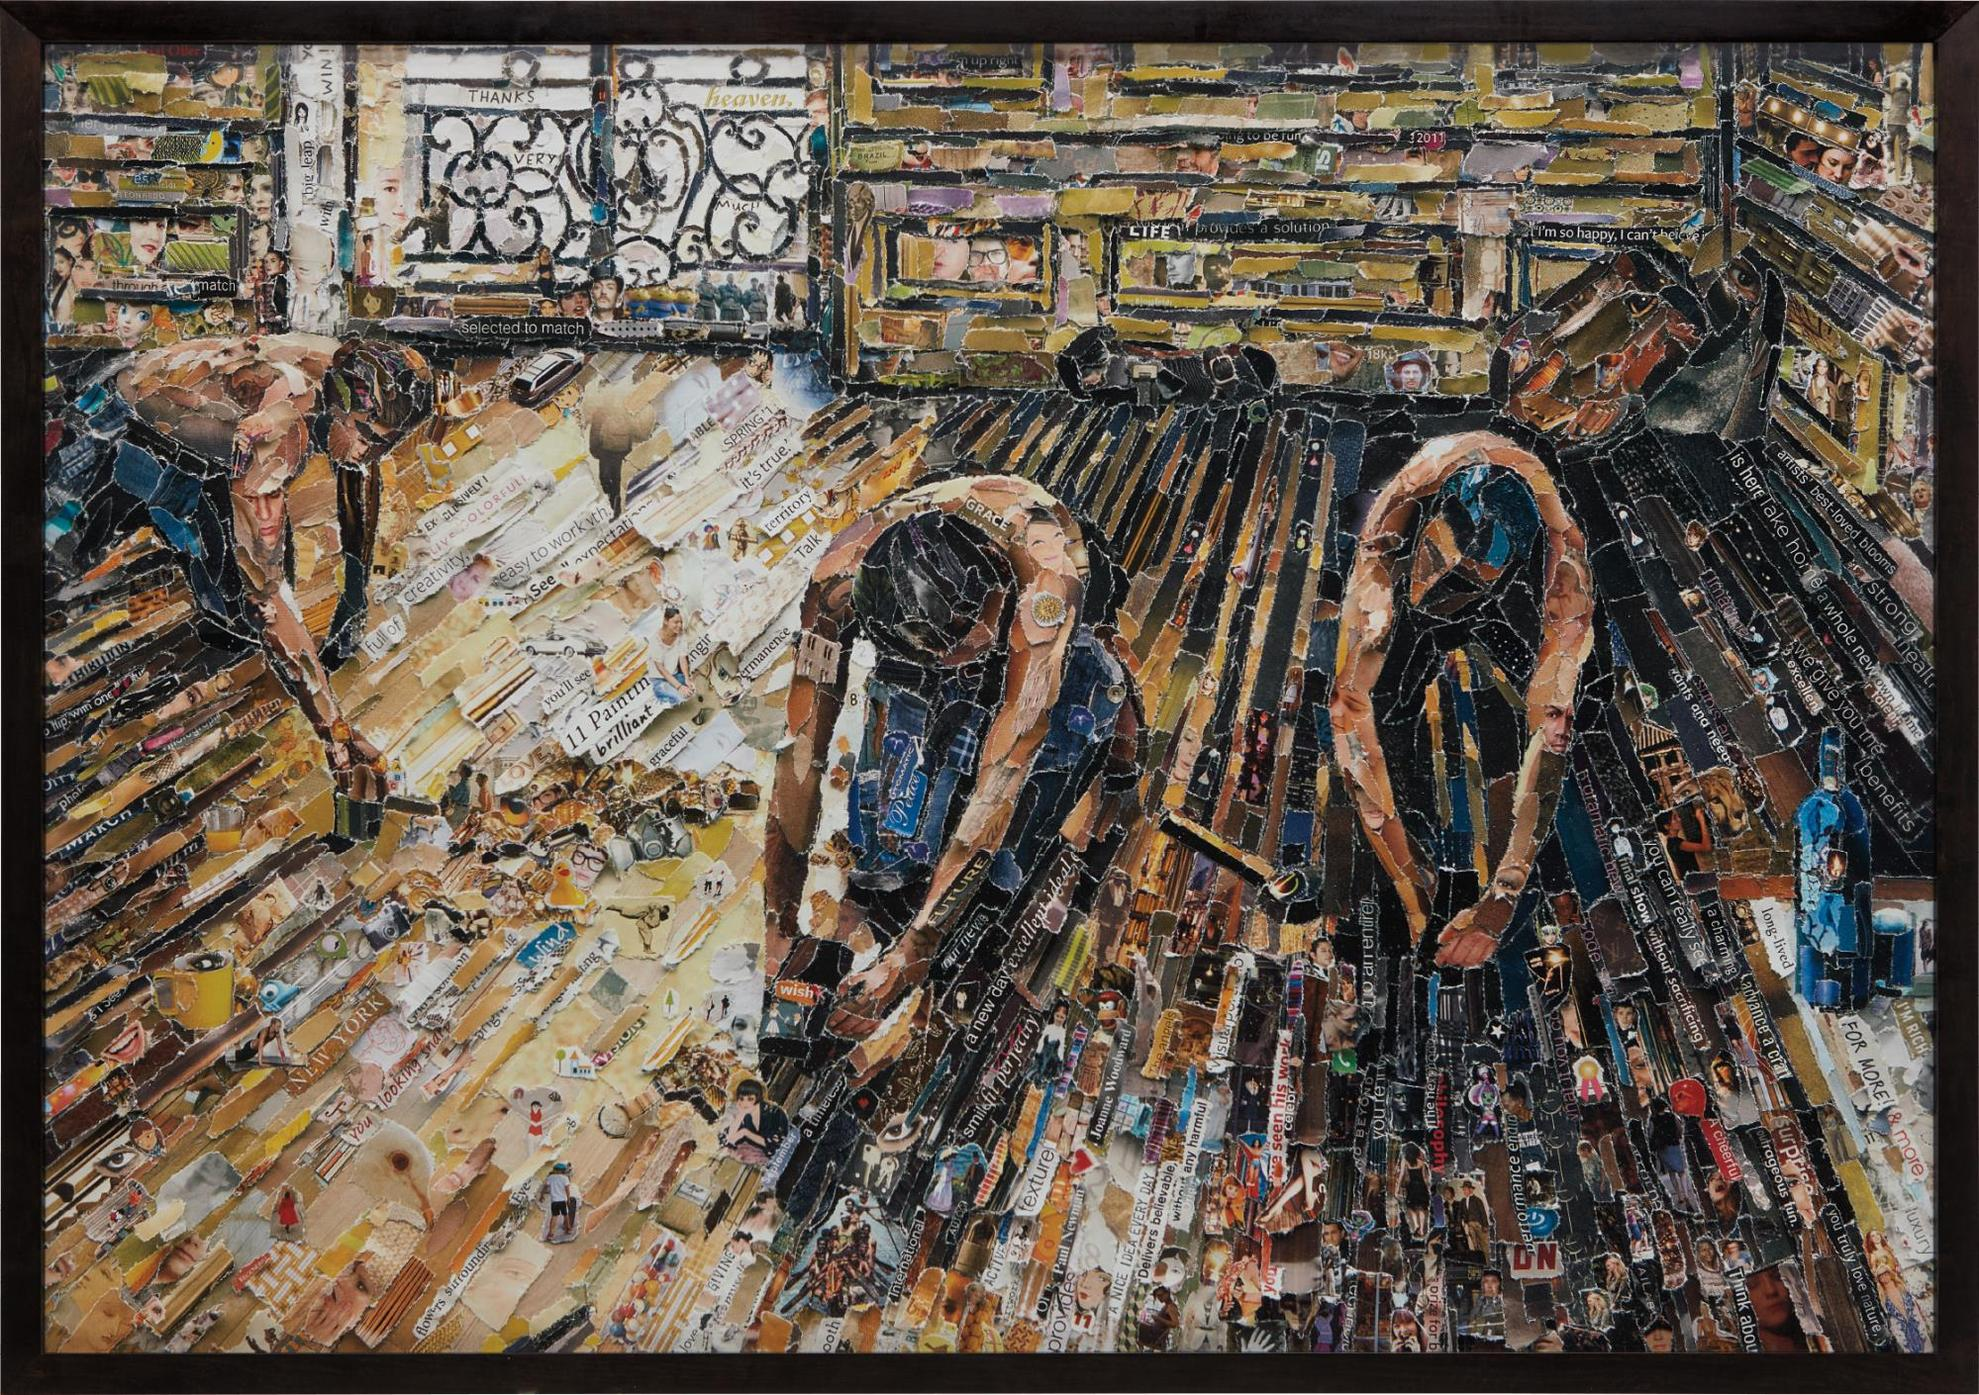 Vik Muniz-Floor Scrapers, After Gustave Caillebotte From Pictures Of Magazines 2-2011